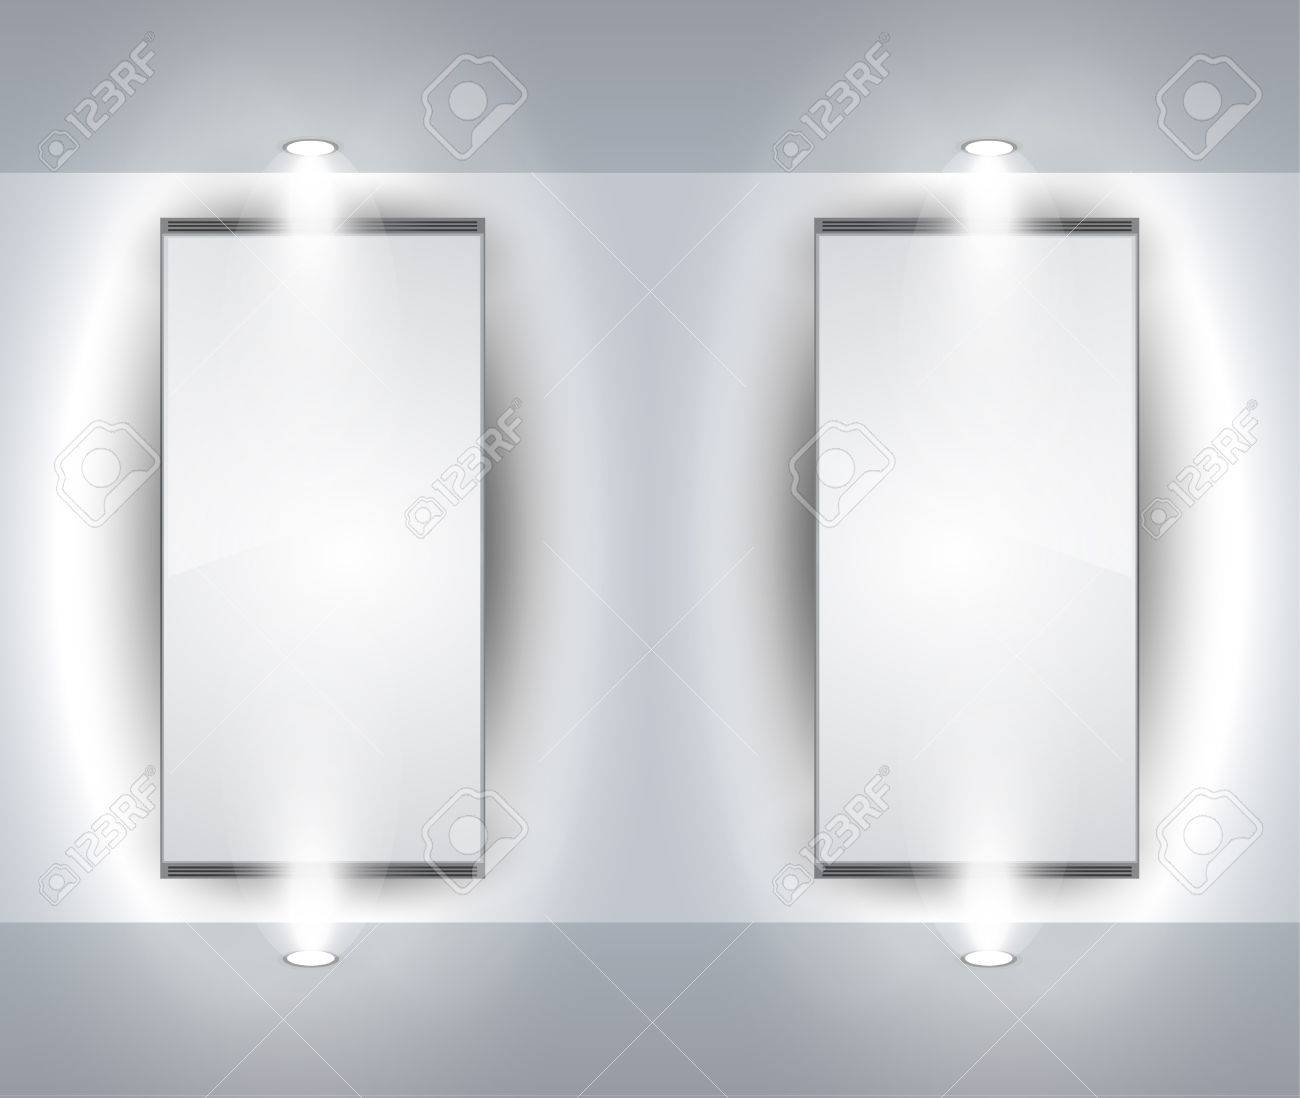 Showroom Panel for product with LED spotlights and place for text or image Stock Vector - 9340867